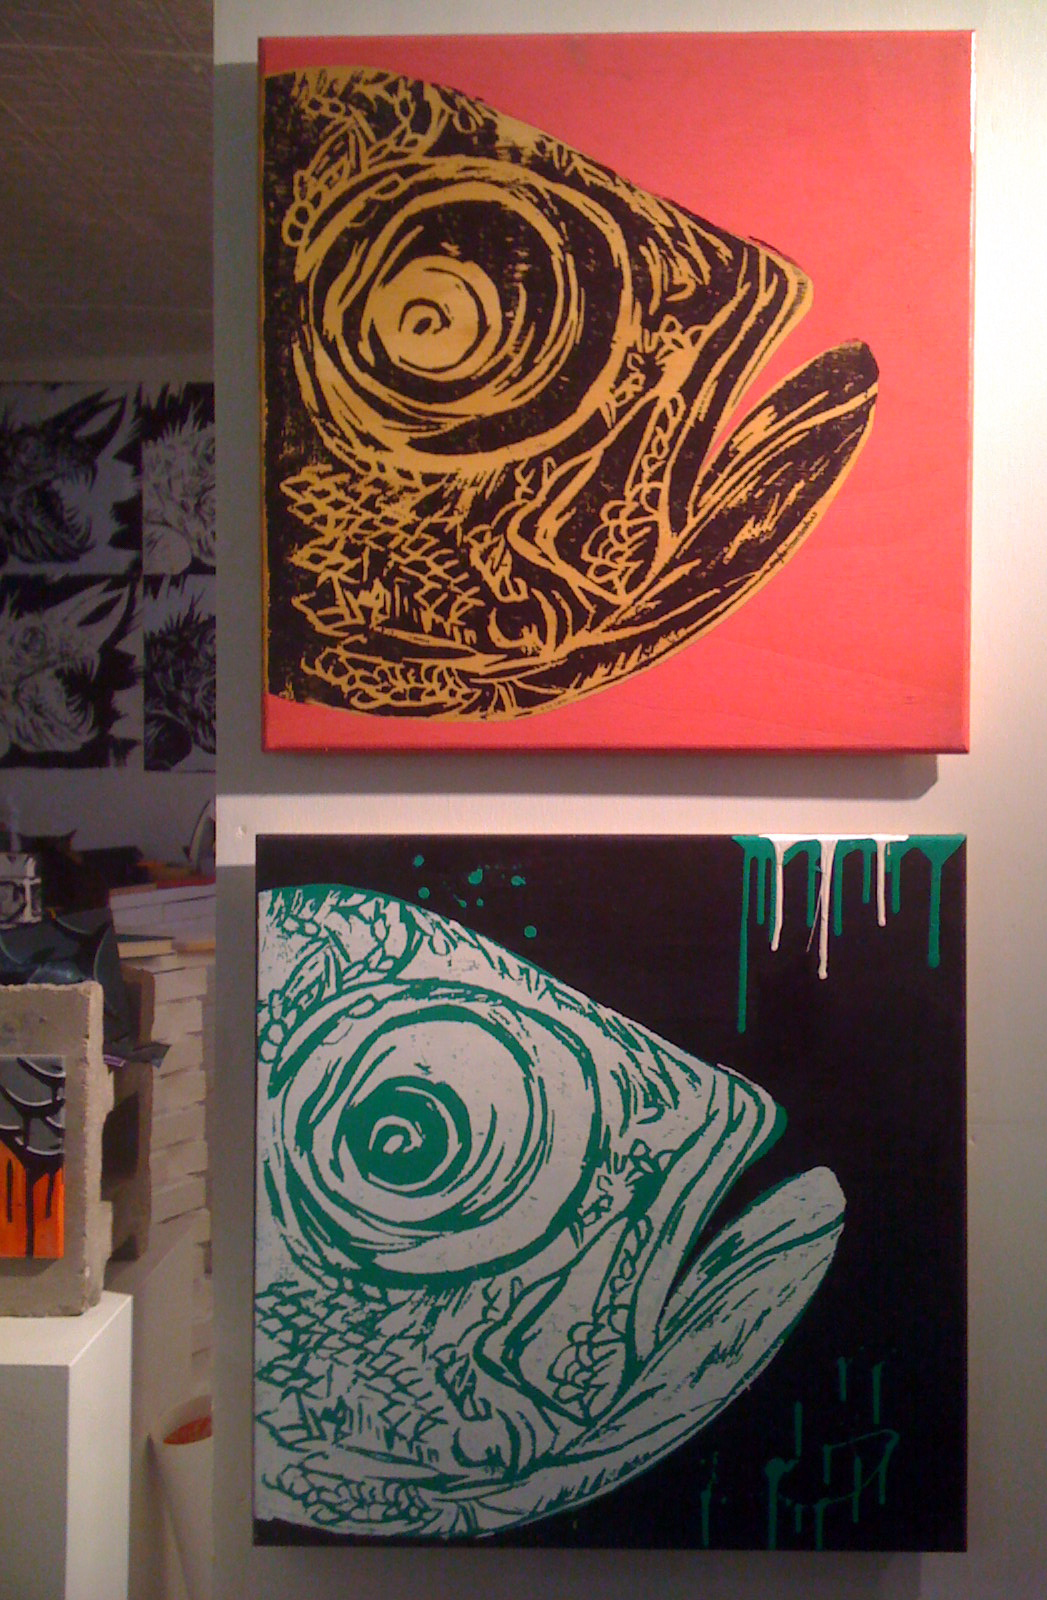 New Gallery: Pandemic opens Saturday in Brooklyn